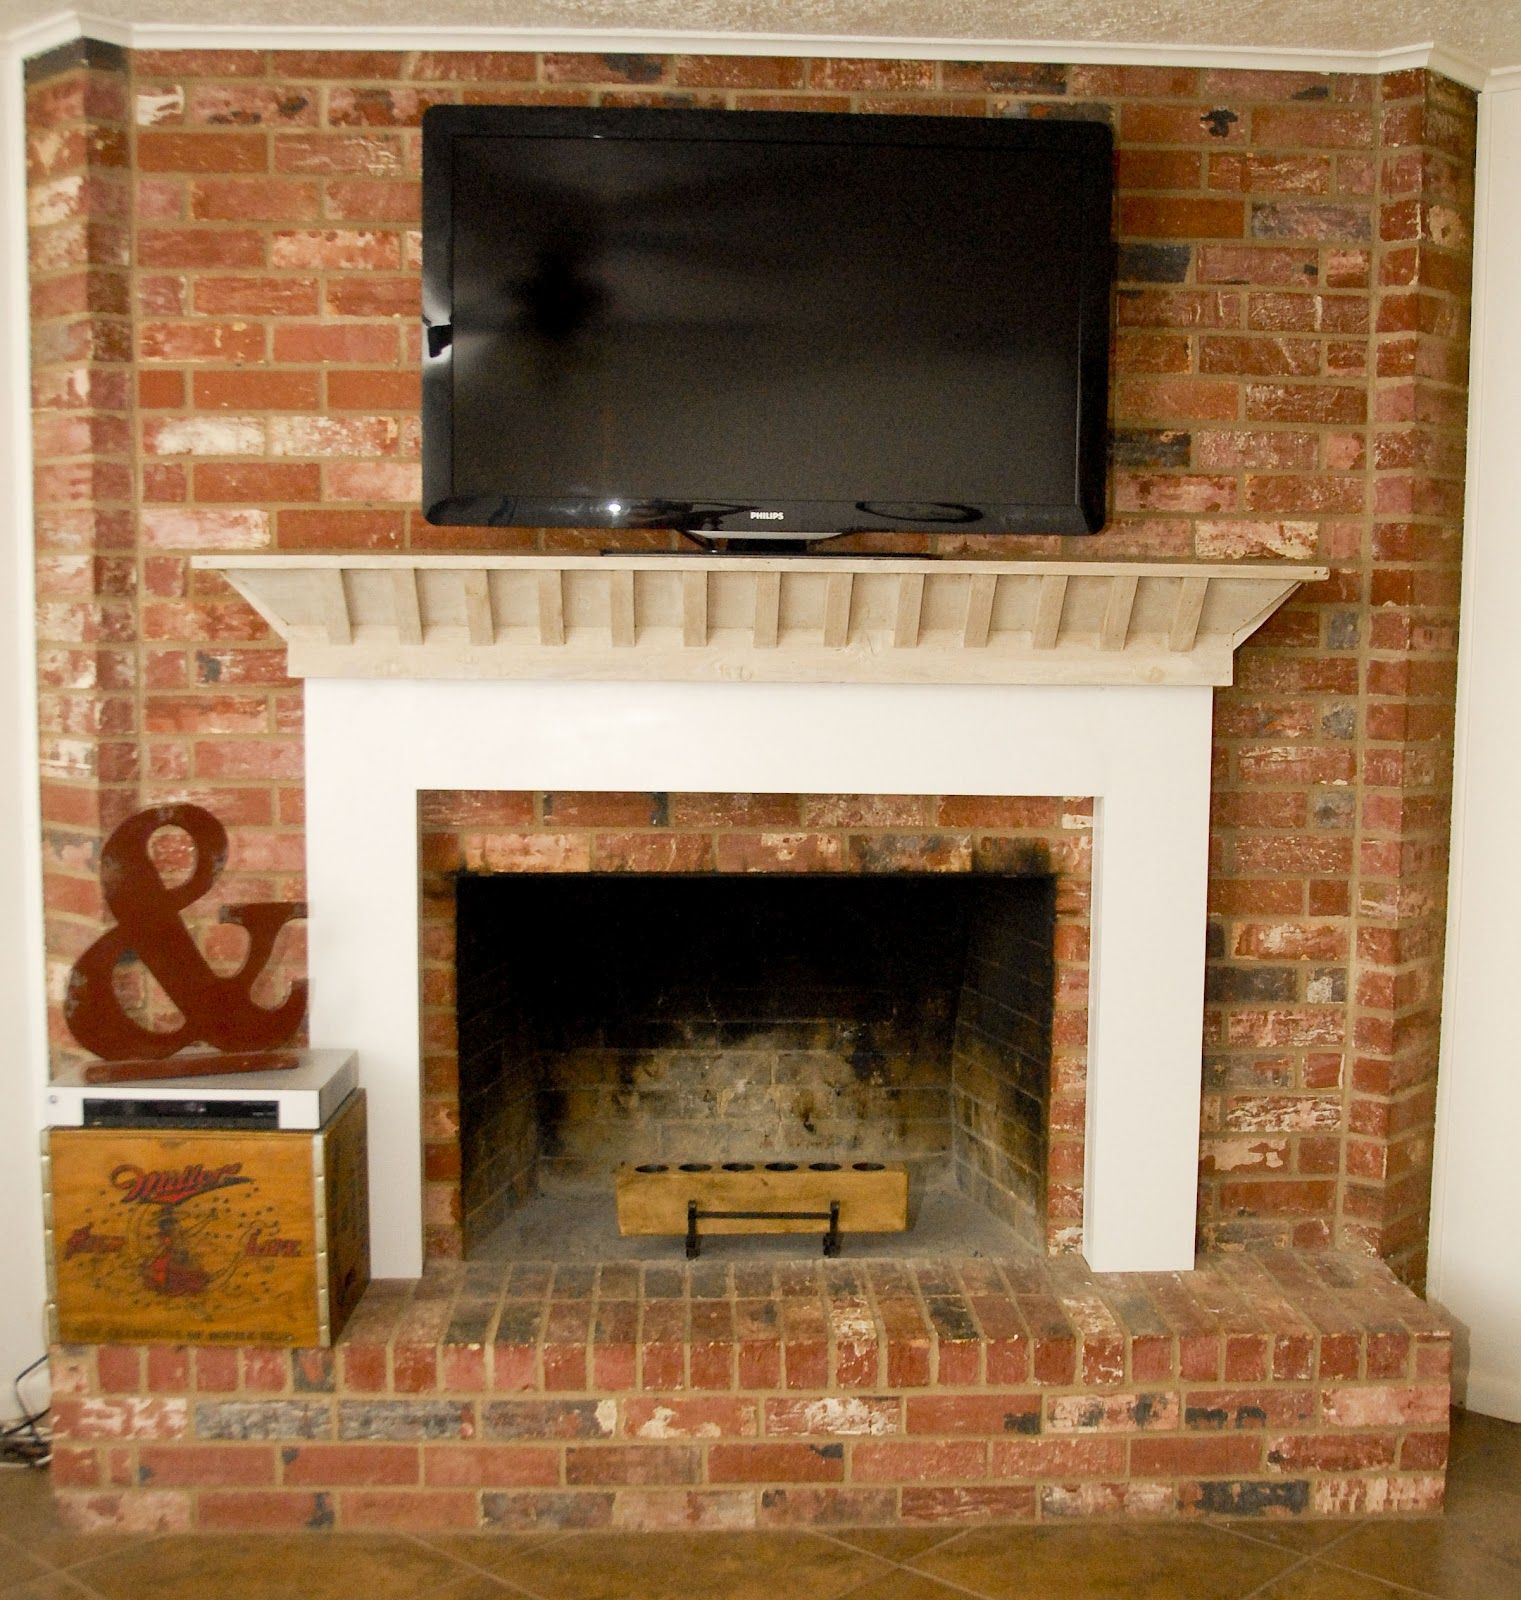 adding aLarge TV Over existing Fireplace | ... to decorate ...